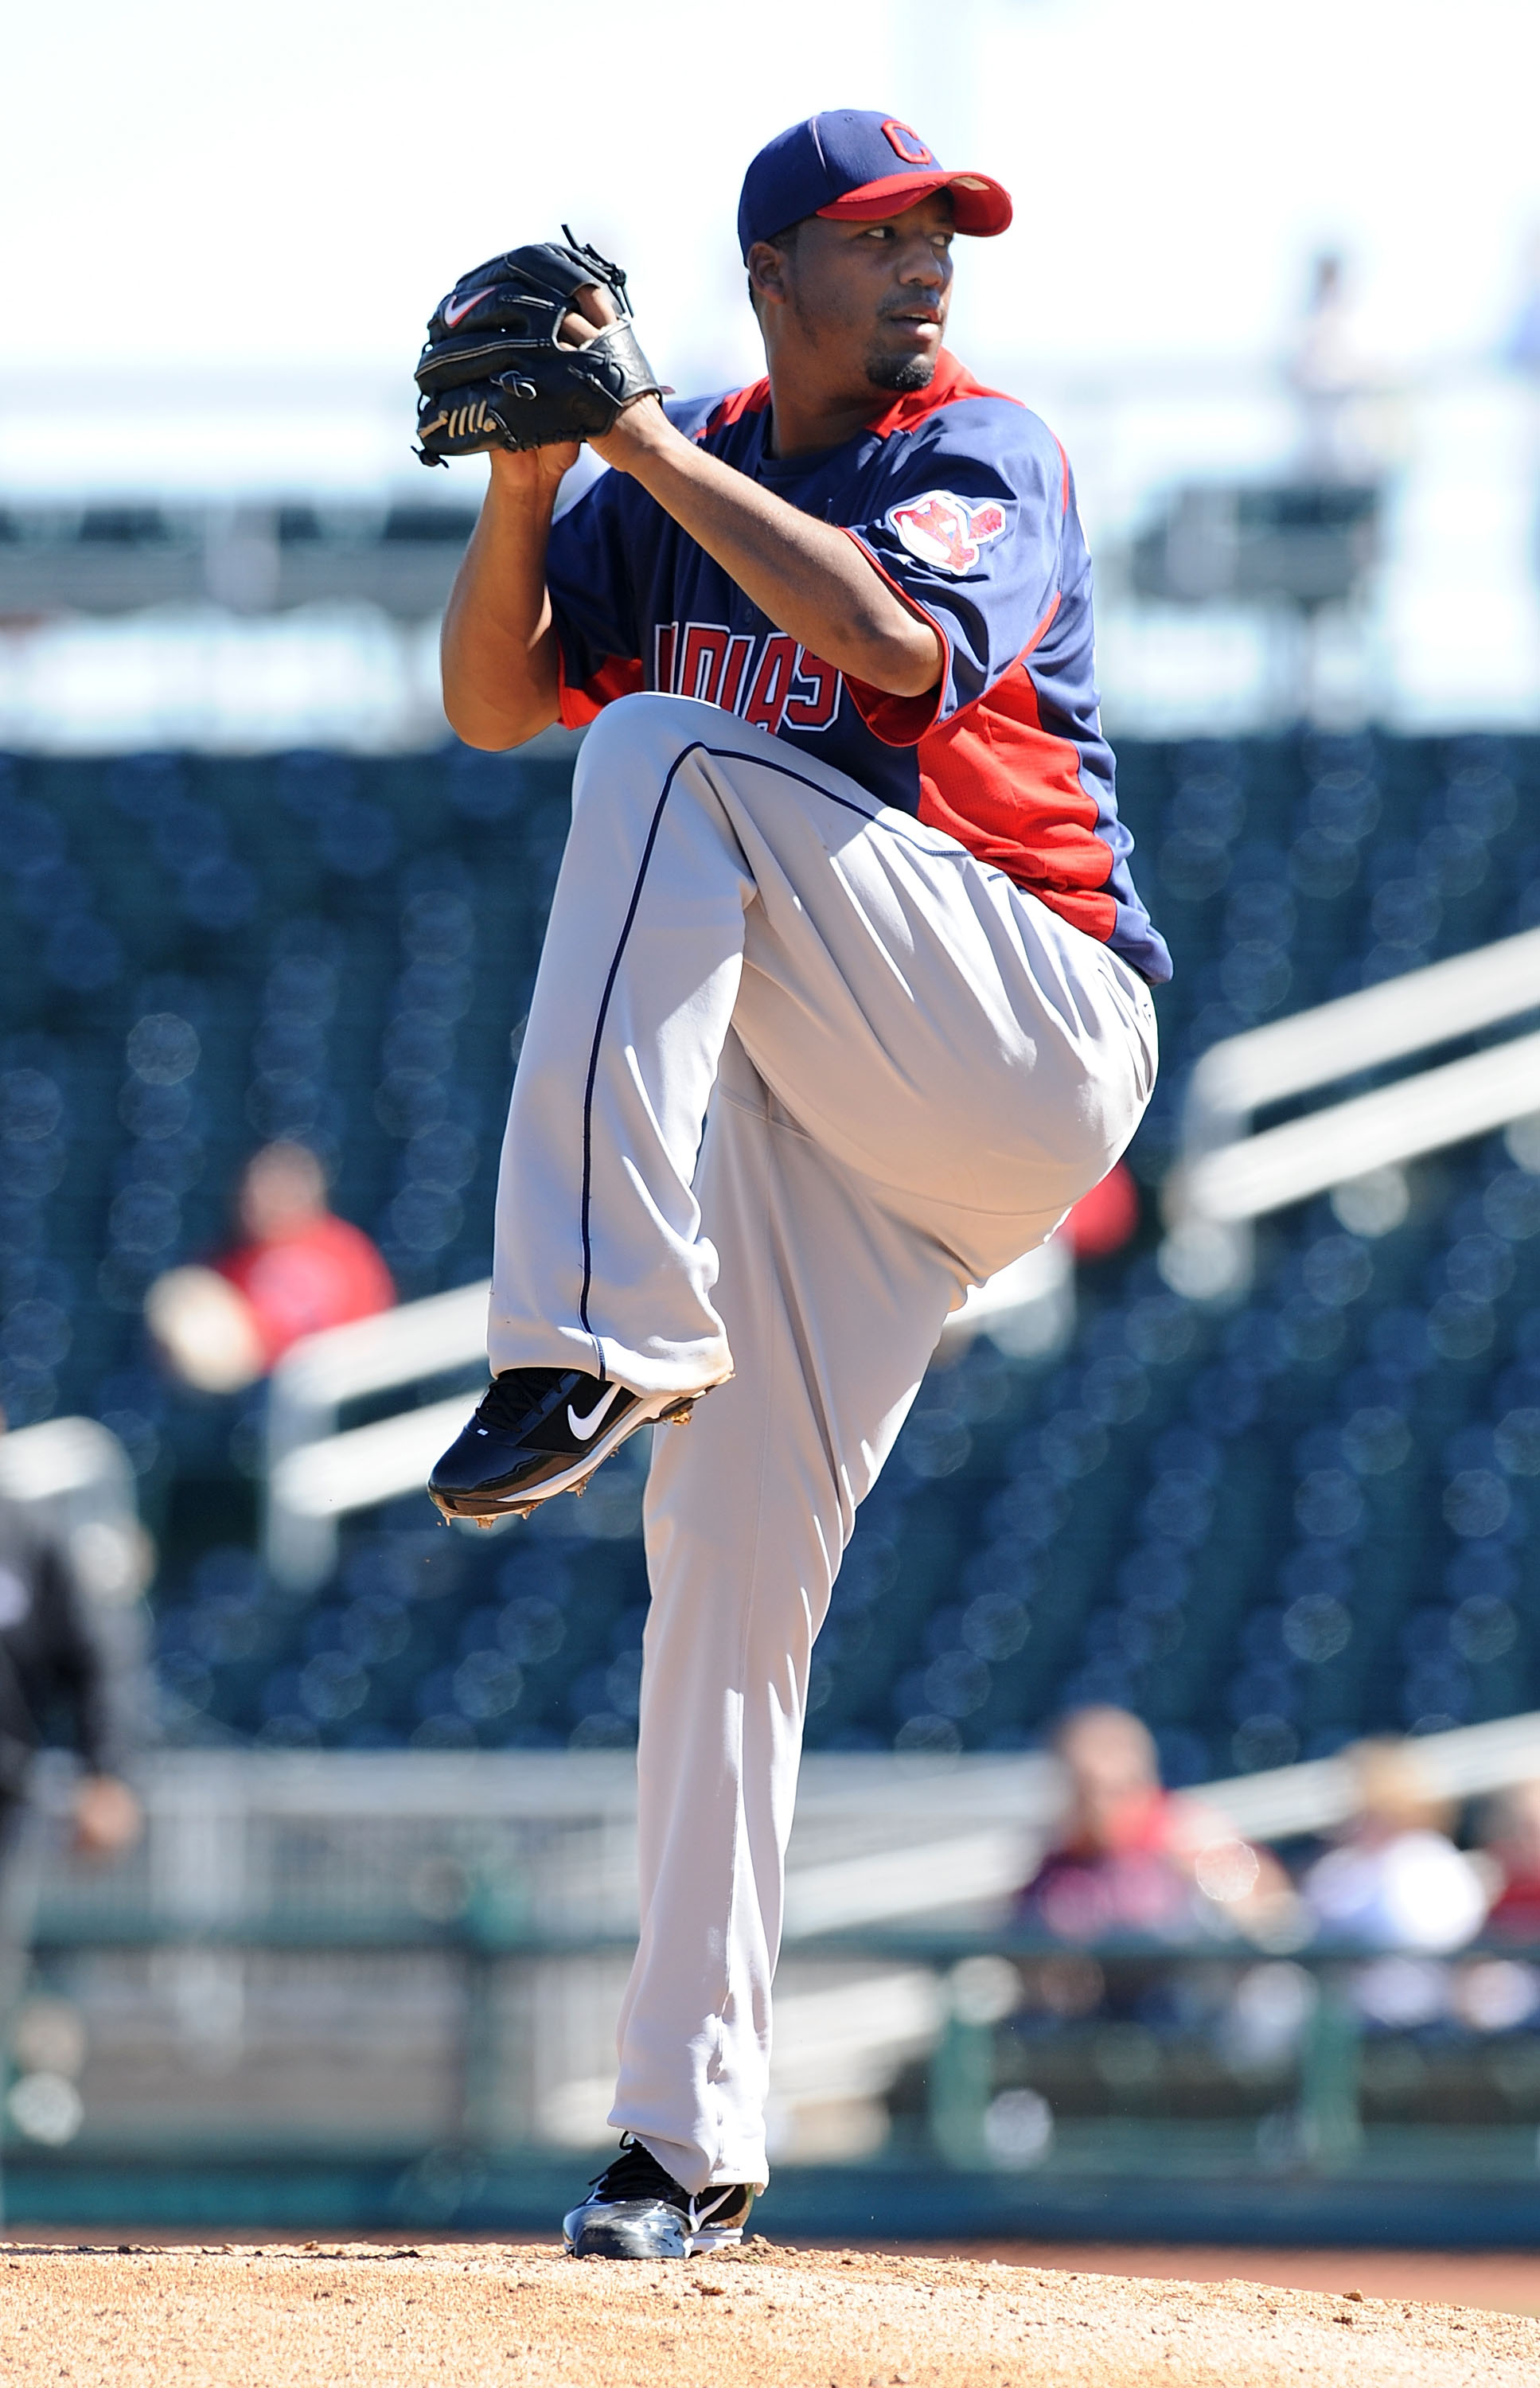 GOODYEAR, AZ - FEBRUARY 28:  Fausto Carmona #55 of the Cleveland Indians delivers a pitch during the first inning against the Cincinnati Reds at Goodyear Ballpark on February 28, 2011 in Goodyear, Arizona.  (Photo by Norm Hall/Getty Images)